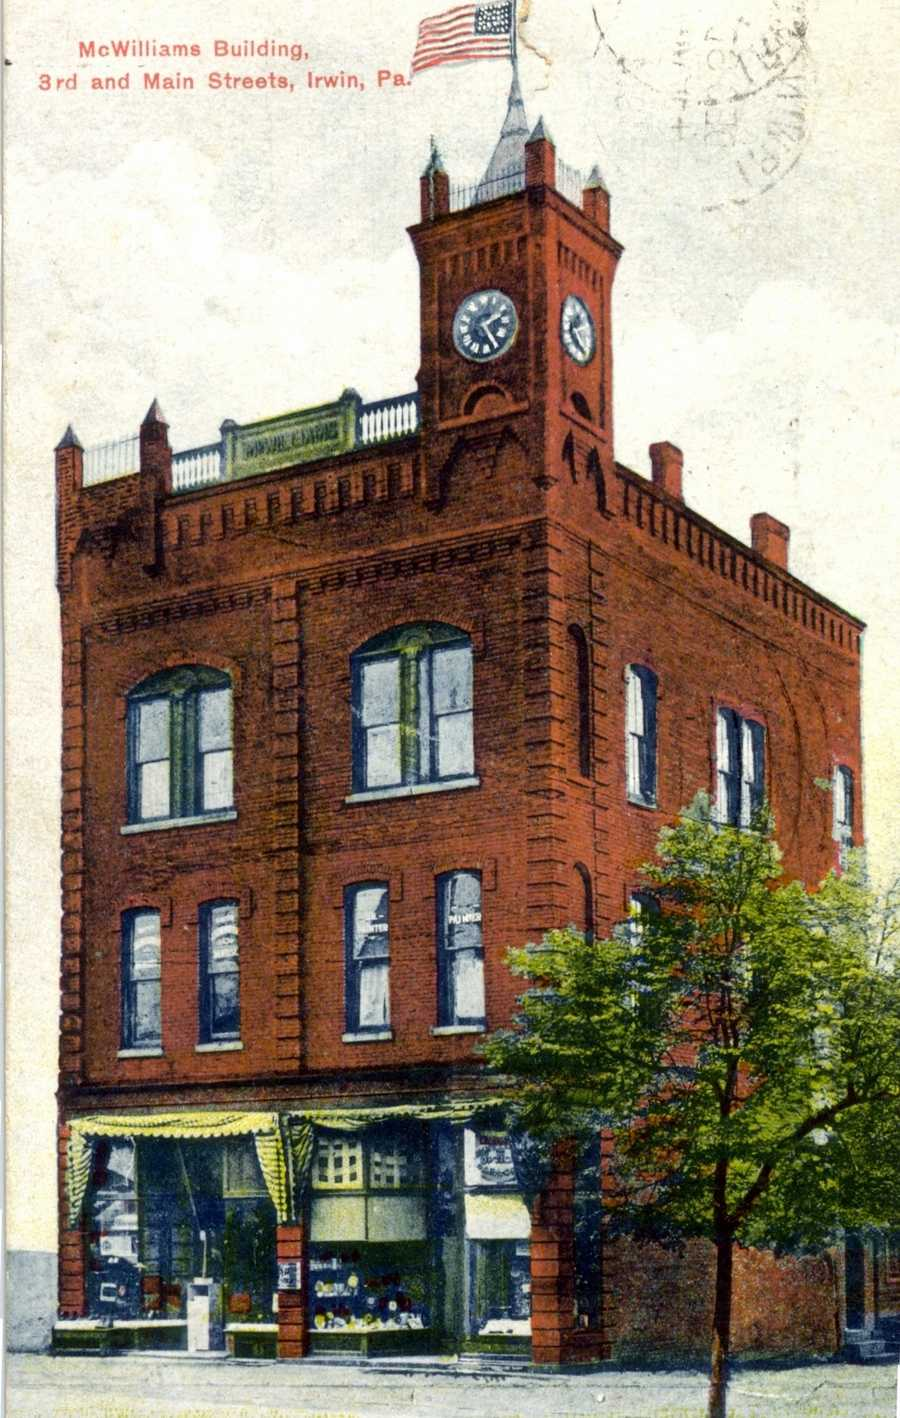 Another look at the McWilliams Building, and clock tower at the corner of 3rd and Main Street in Irwin